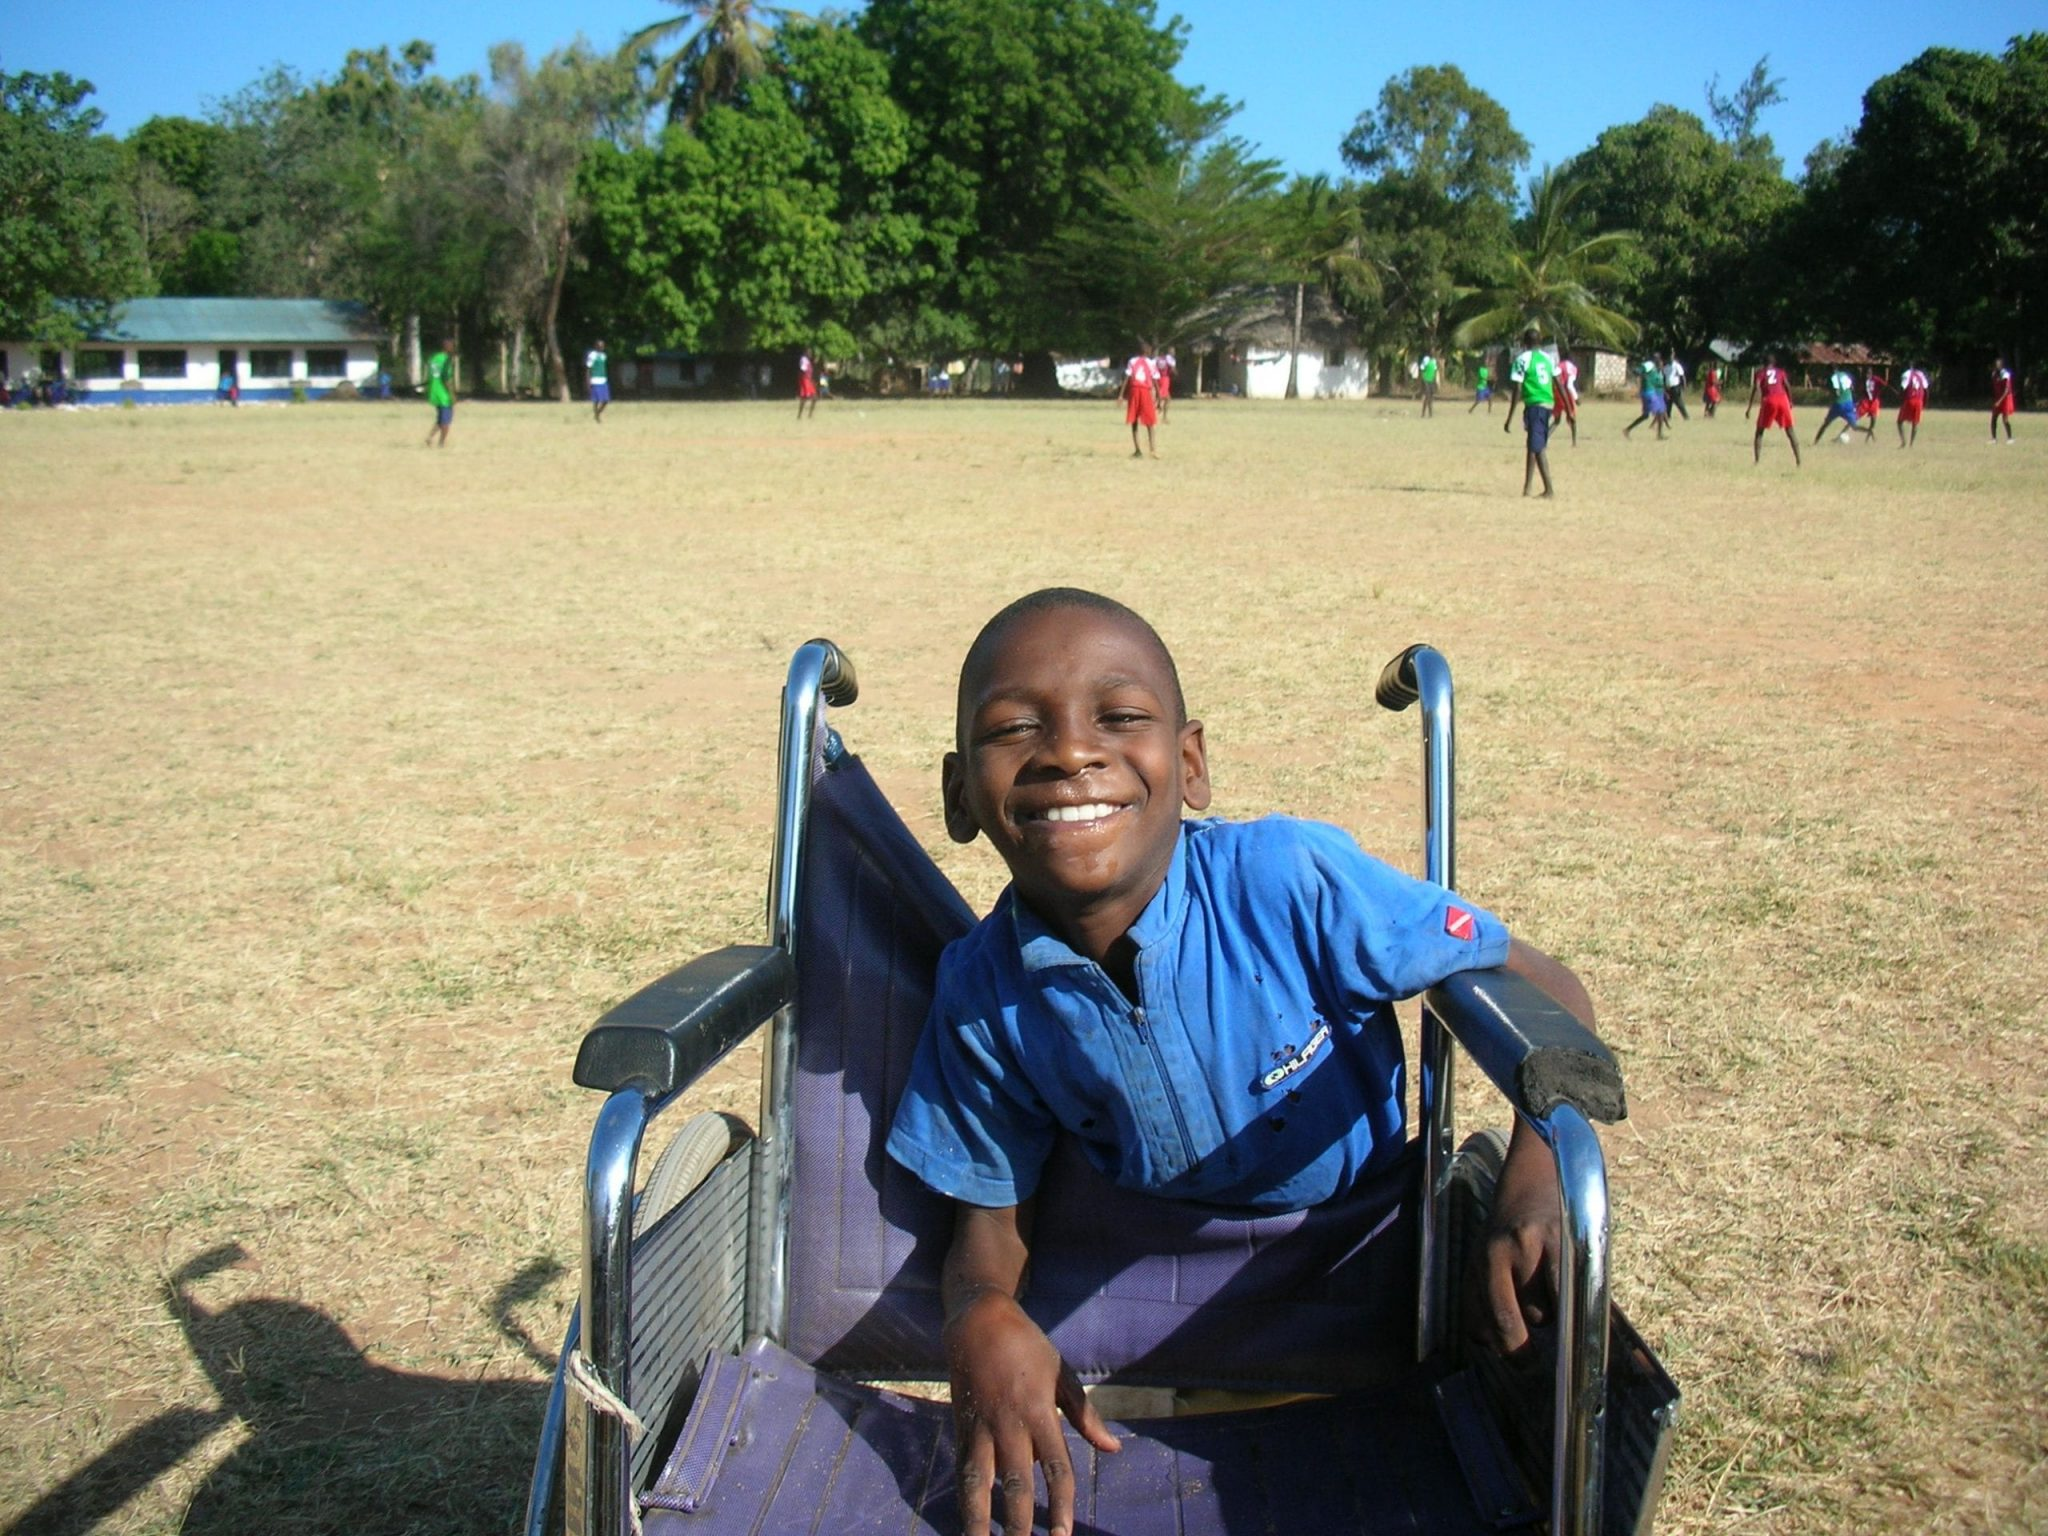 A Kenyan boy smiling and leaning on a wheelchair.